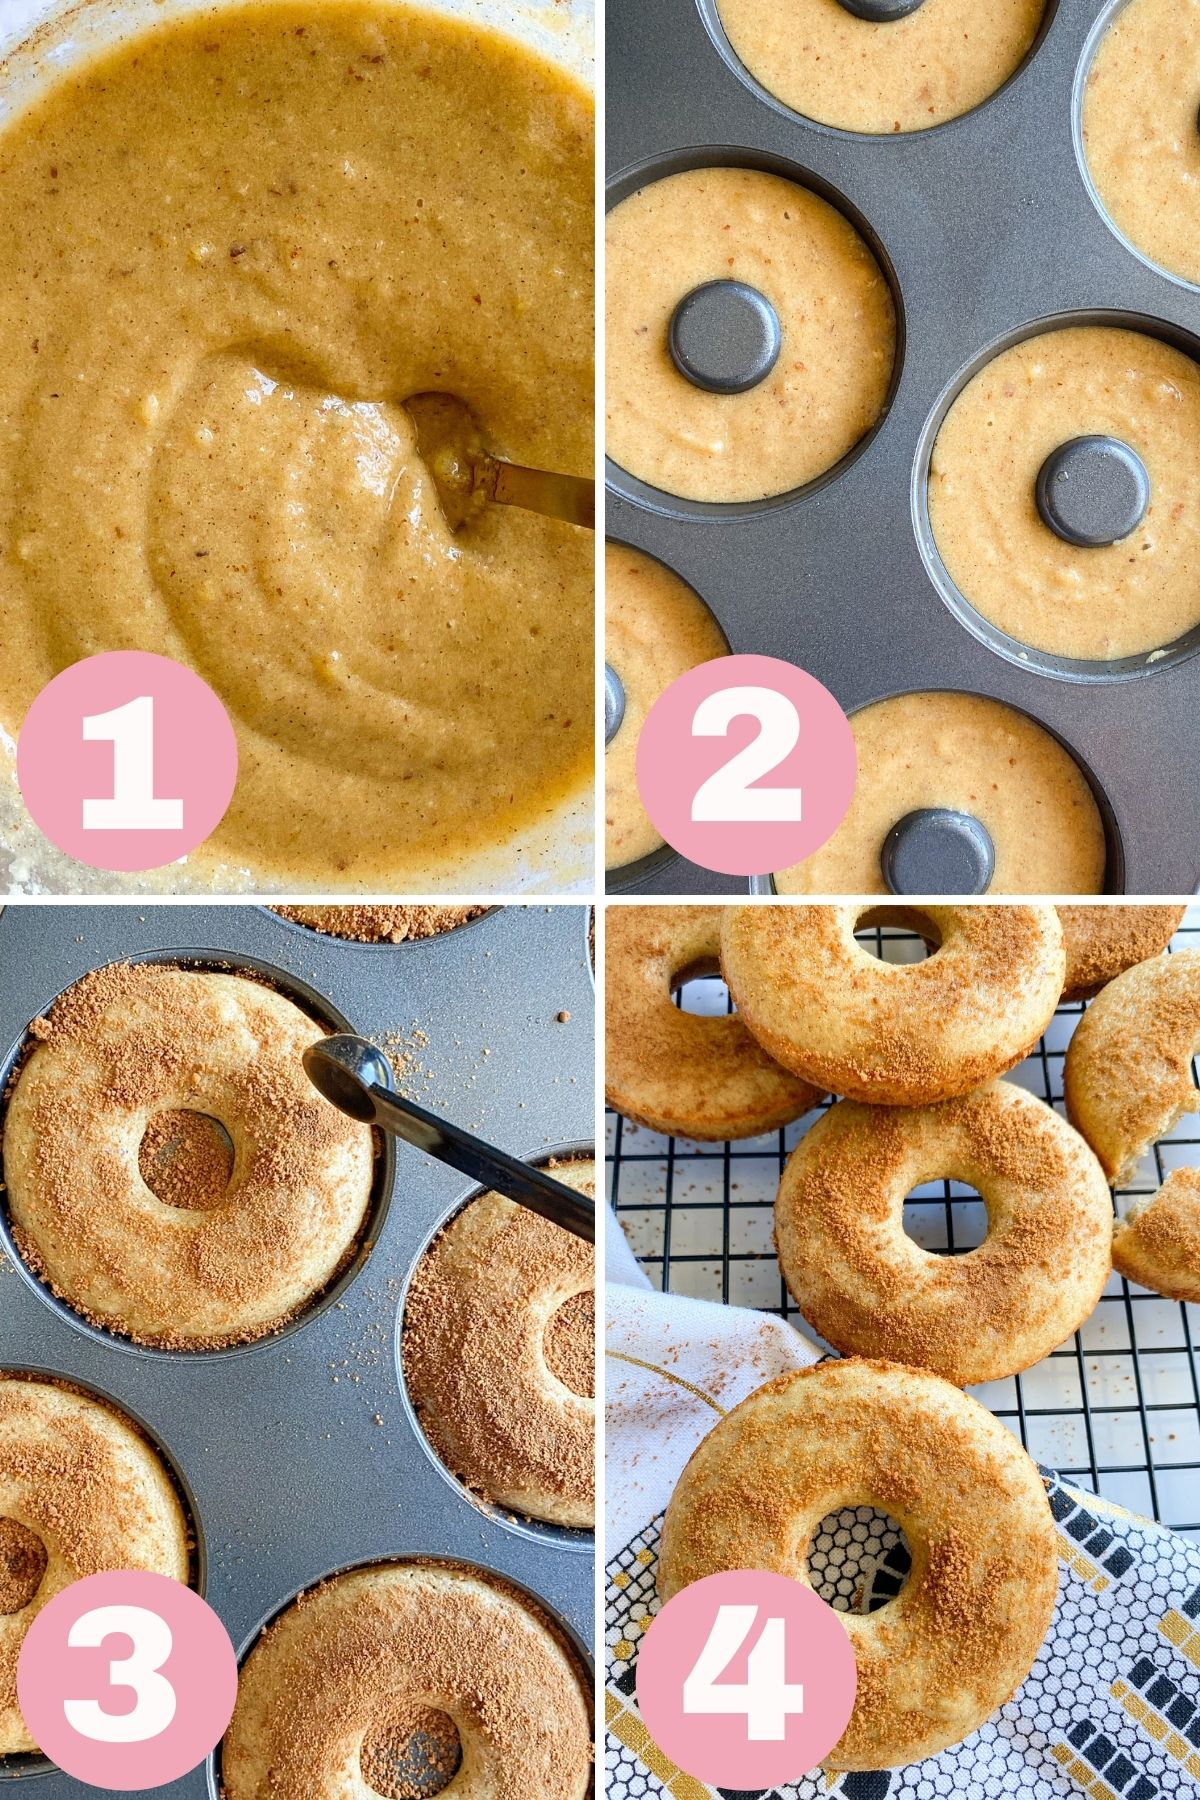 4 steps how to make baked donuts